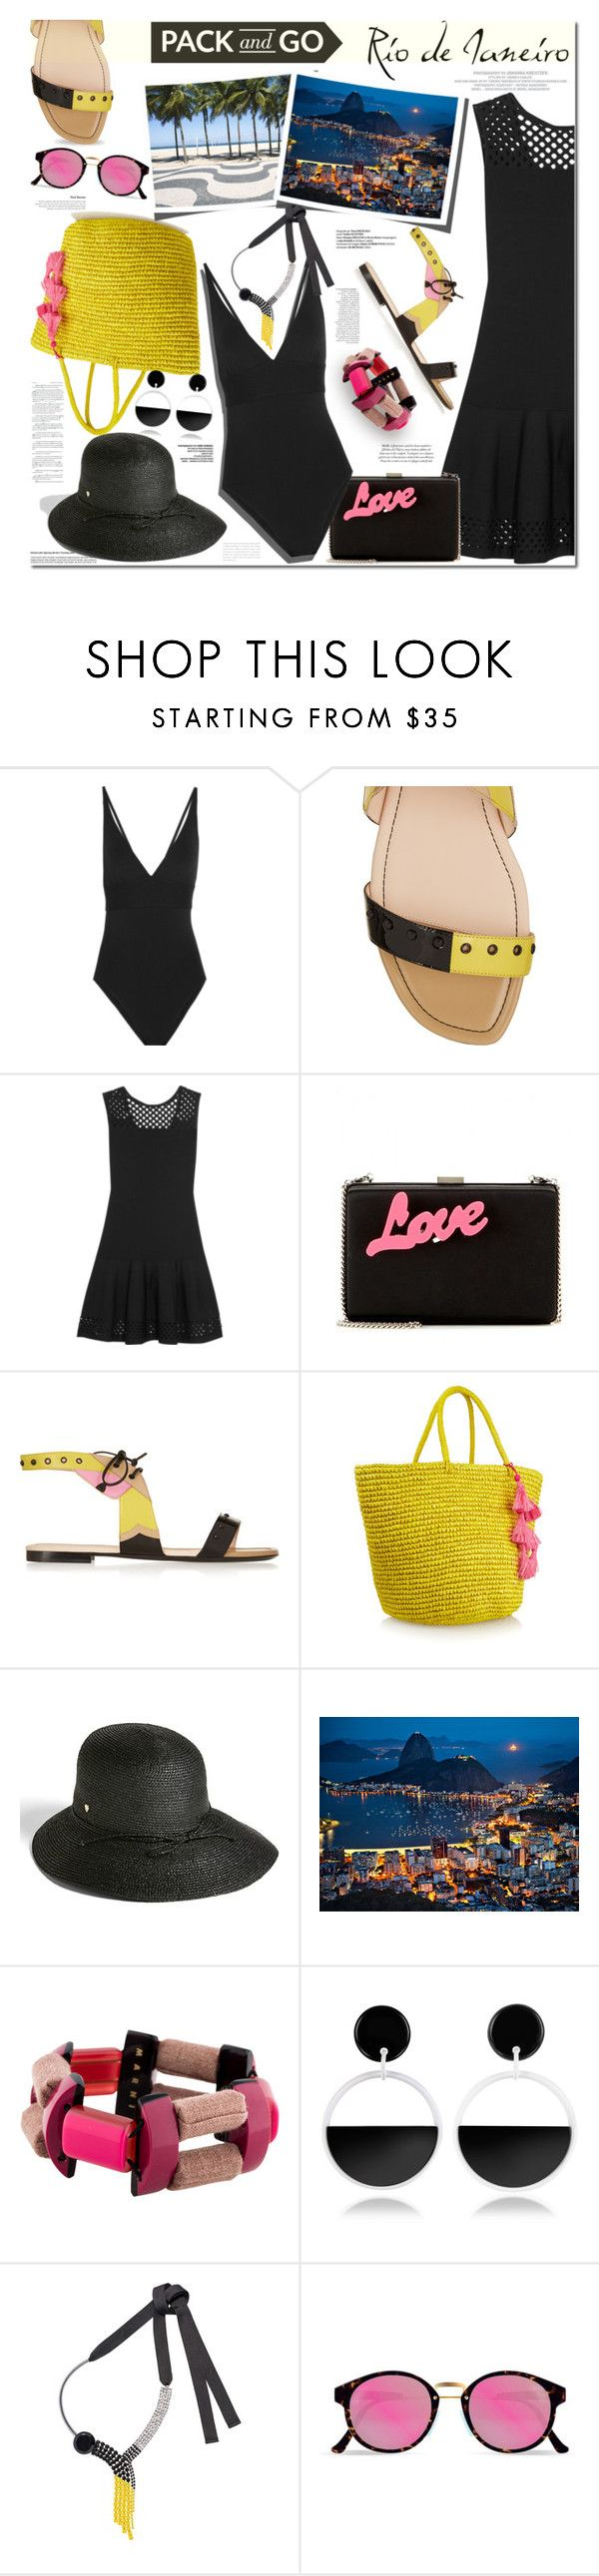 """Pack and Go:  Rio de Janeiro"" by margaretferreira ❤ liked on Polyvore featuring Eres, Fendi, Anja, STELLA McCARTNEY, Helen Kaminski, National Geographic Home, Marni, RetroSuperFuture, CENA and Packandgo"